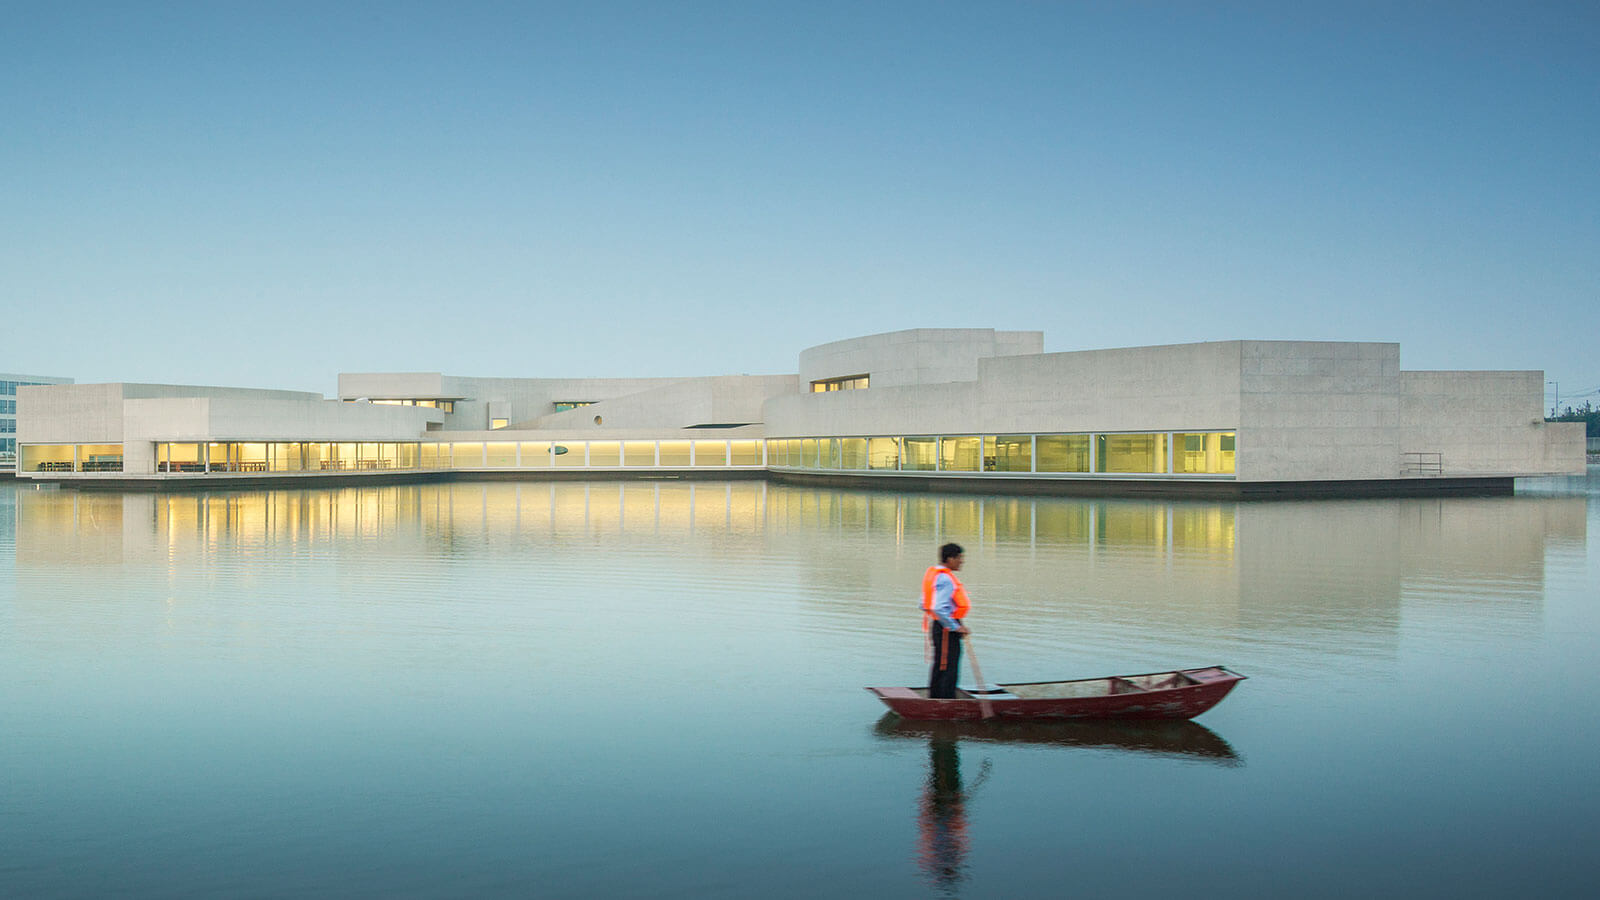 Man in a boat looks at a white concrete building.